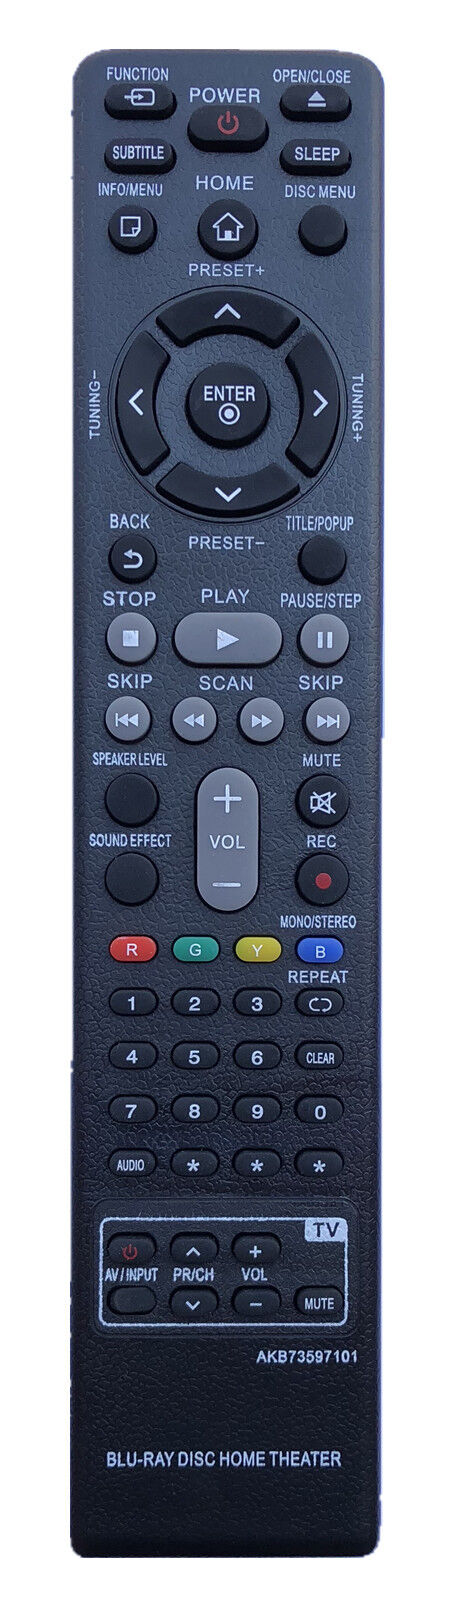 New Remote Control AKB73597101 For LG Blu-Ray Disc Home Thea